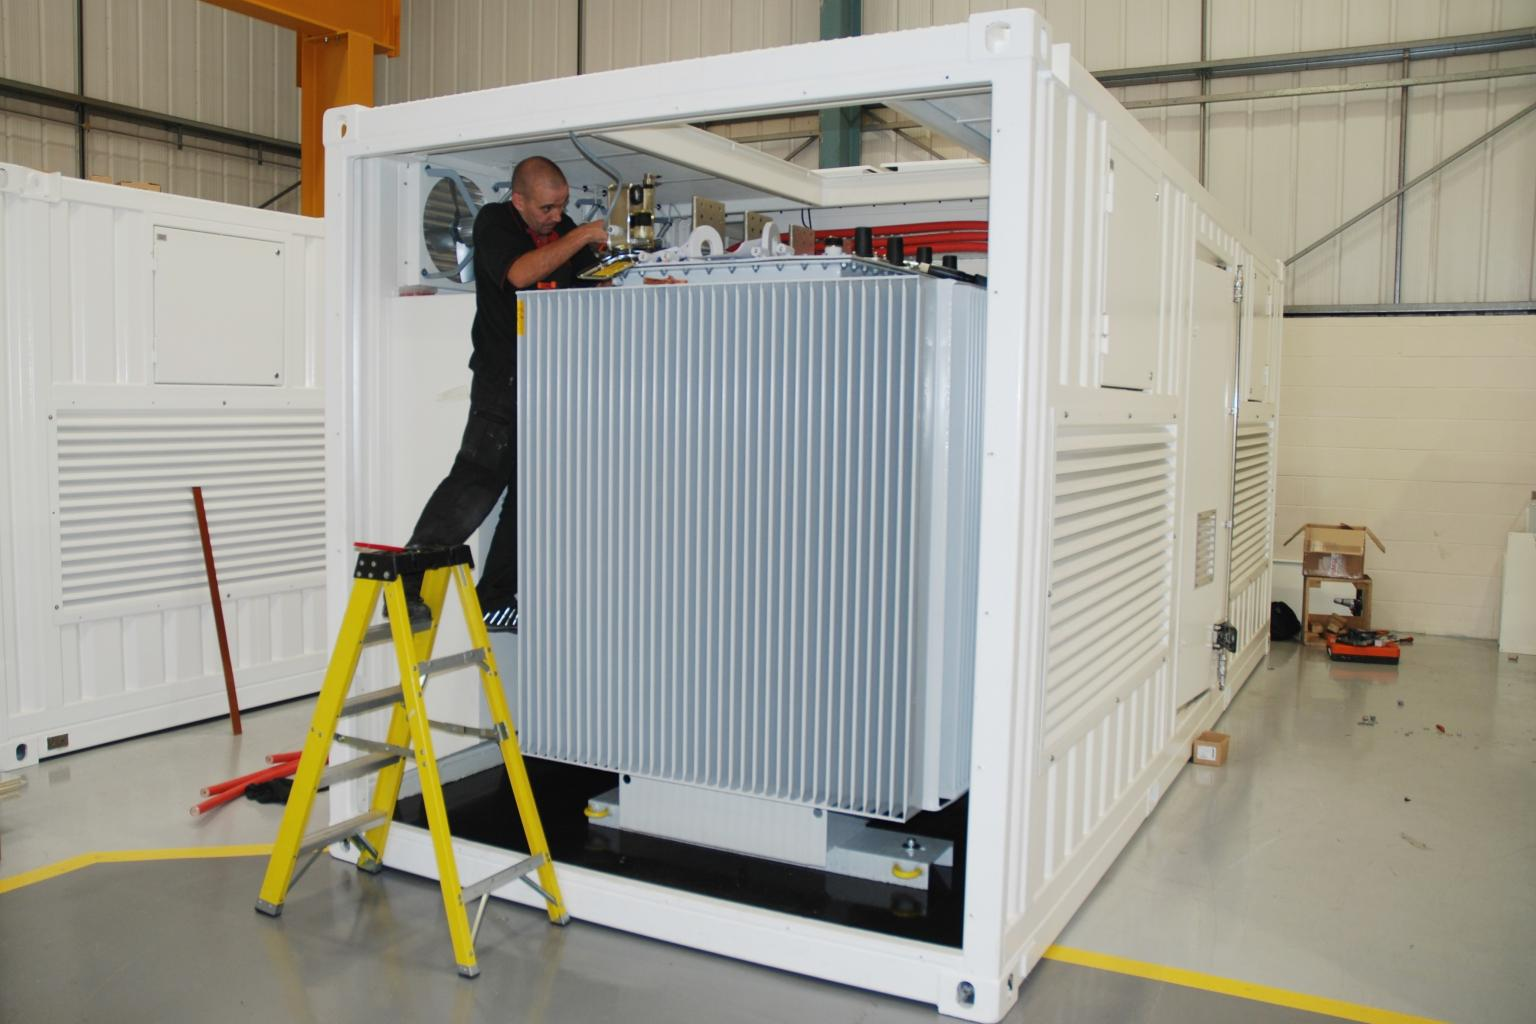 Inside the container sit various components such as the input isolators, cooling fans and extraction, voltage tap selection and medium/low voltage switchgear arrangement.